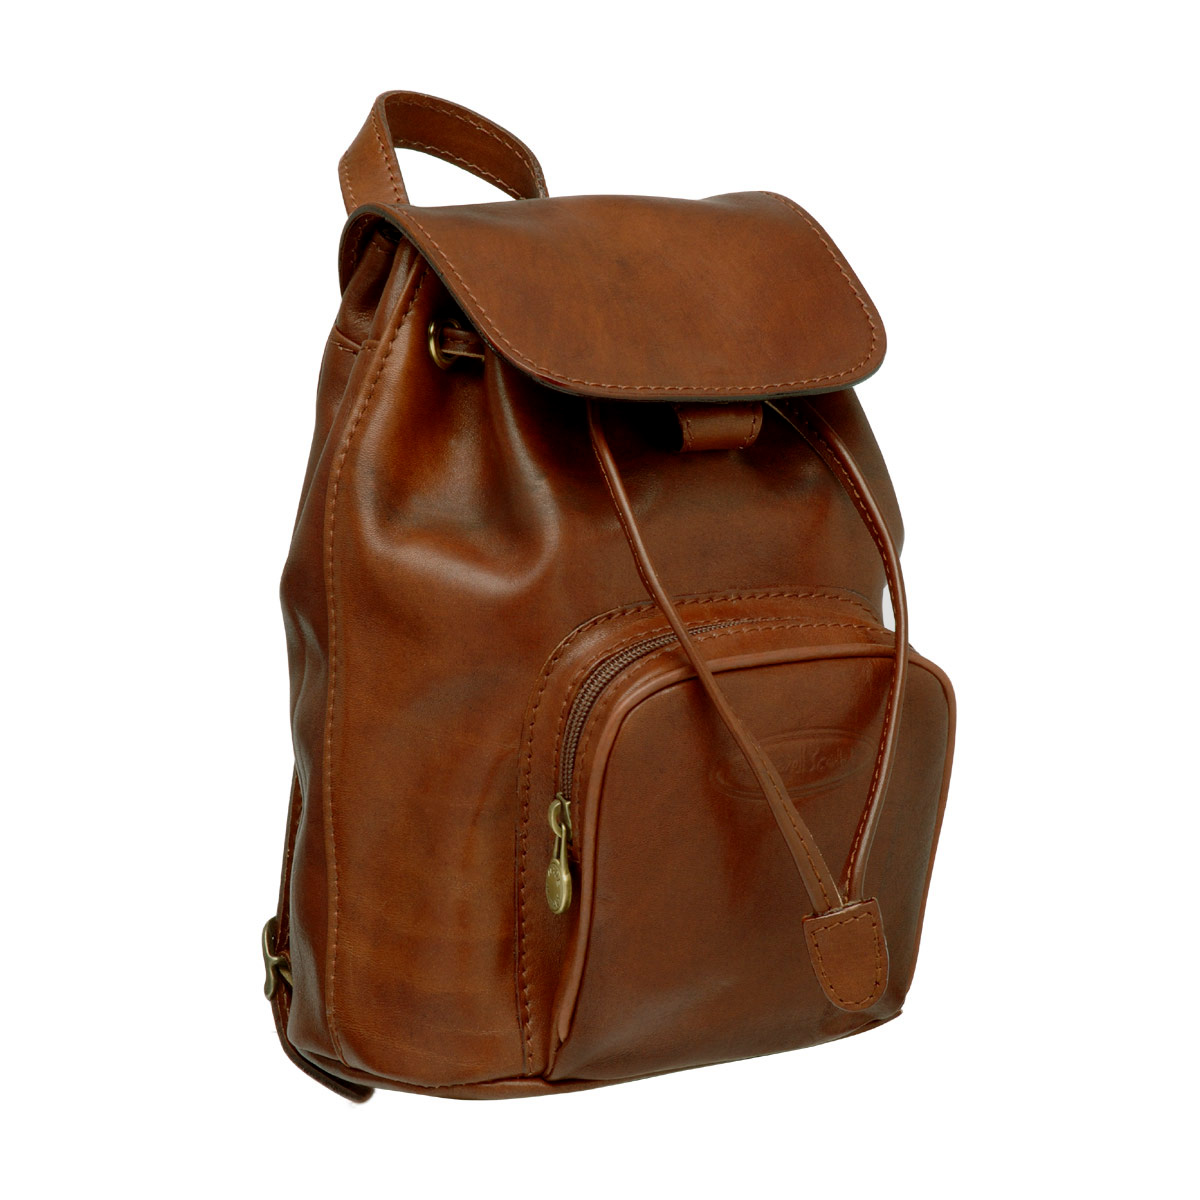 Backpack Manufacturer & Manufacturer from, India | ID - 921442